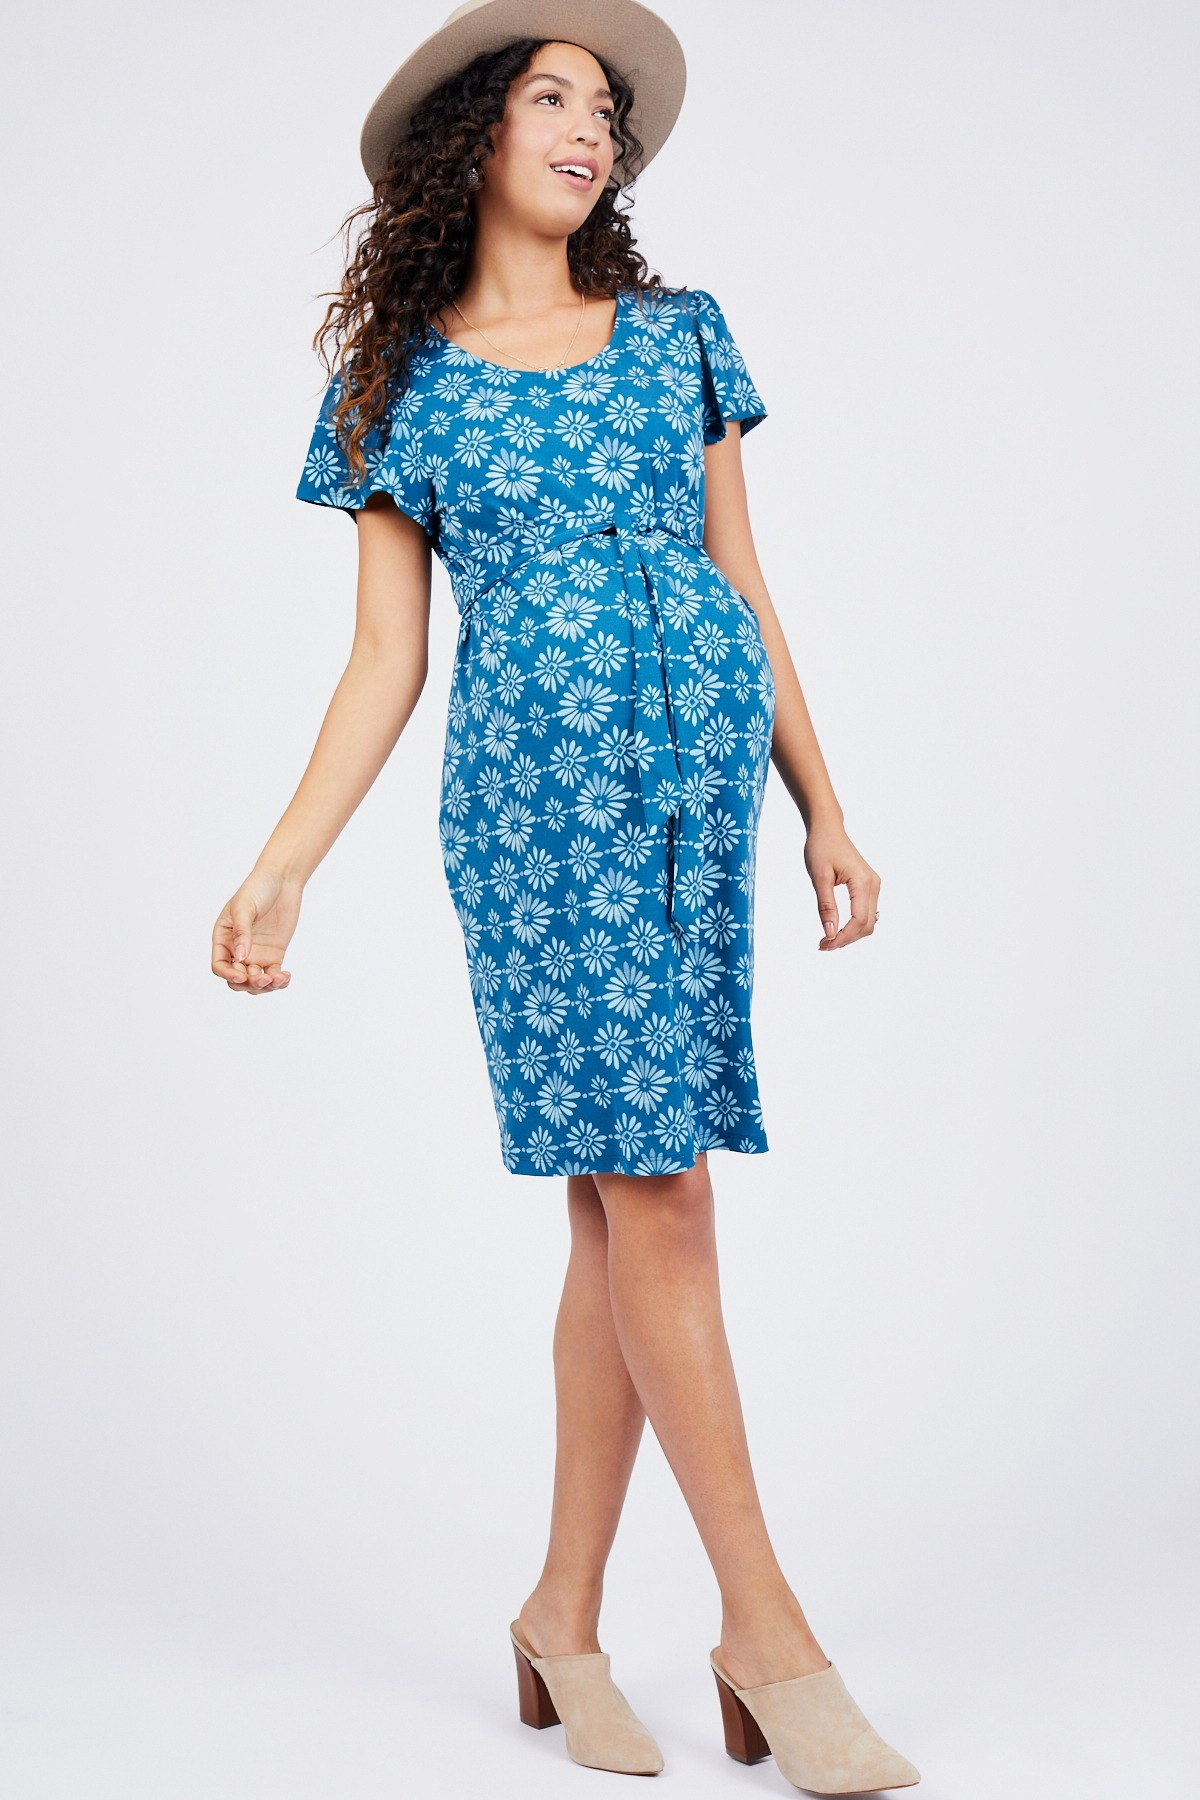 Flutter Sleeve Dress by Octavia Maternity - Rent Clothes with Le Tote